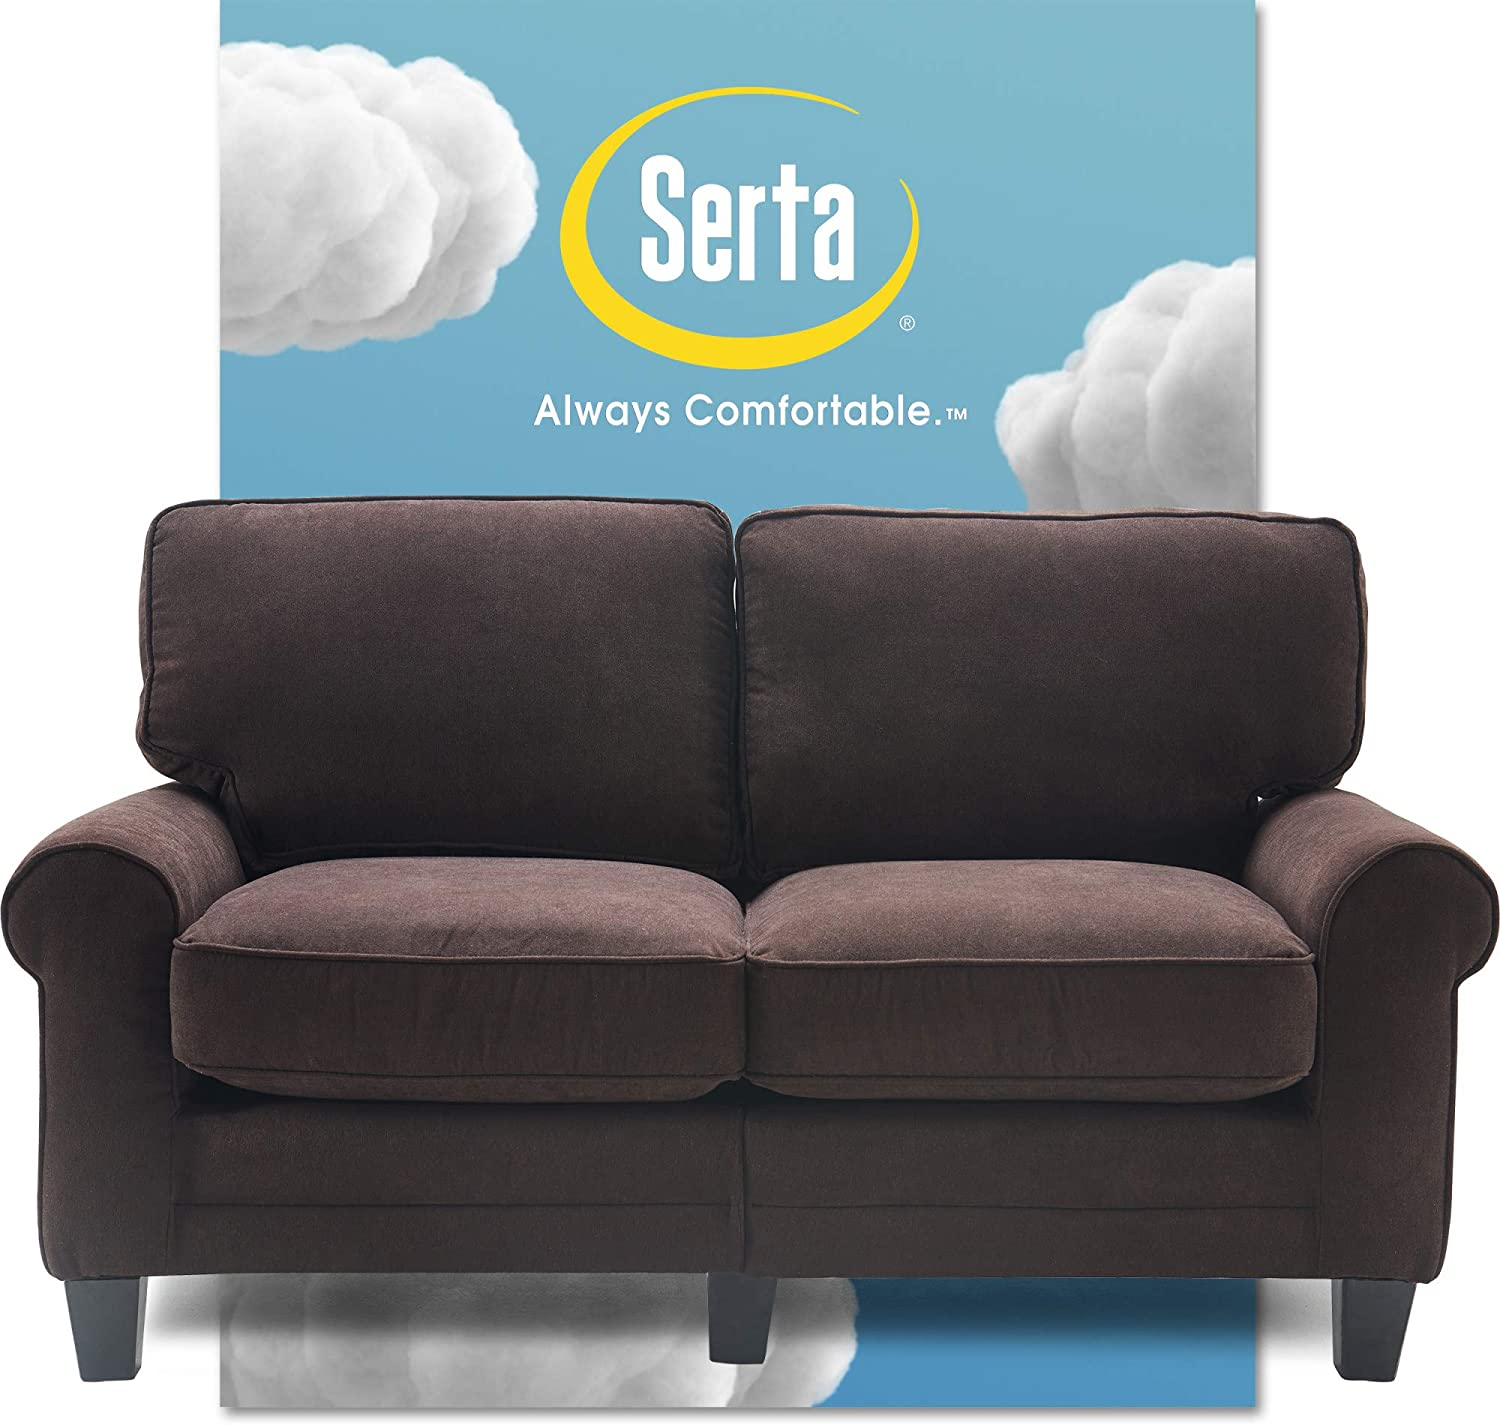 "Serta Copenhagen Sofa Couch for Two People, Pillowed Back Cushions and Rounded Arms, Durable Modern Upholstered Fabric, 61"" Loveseat, Dark Brown"